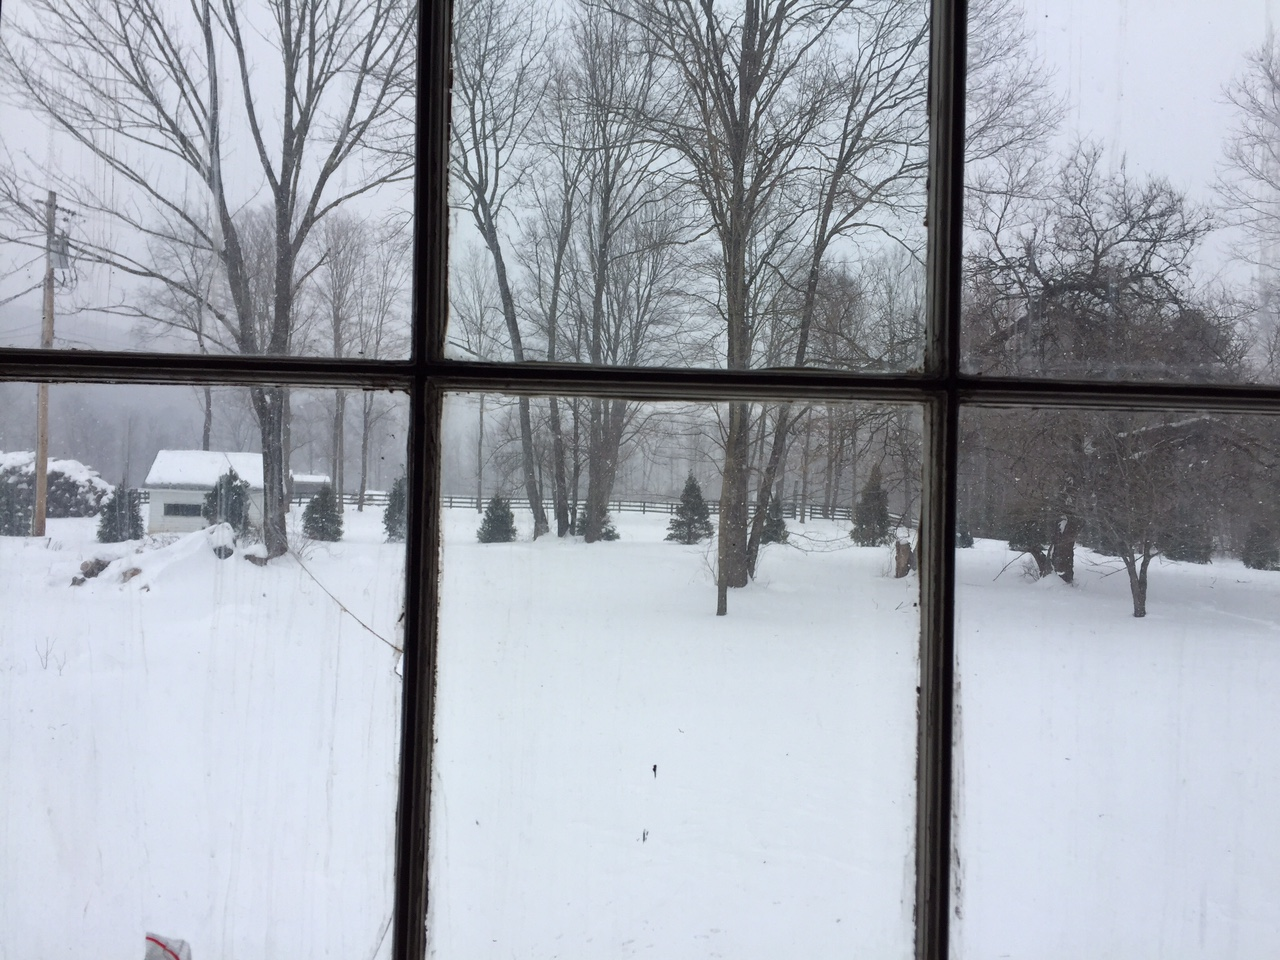 The view from the TV room while we were working. Our mini orchard will probably go in this area in the spring.